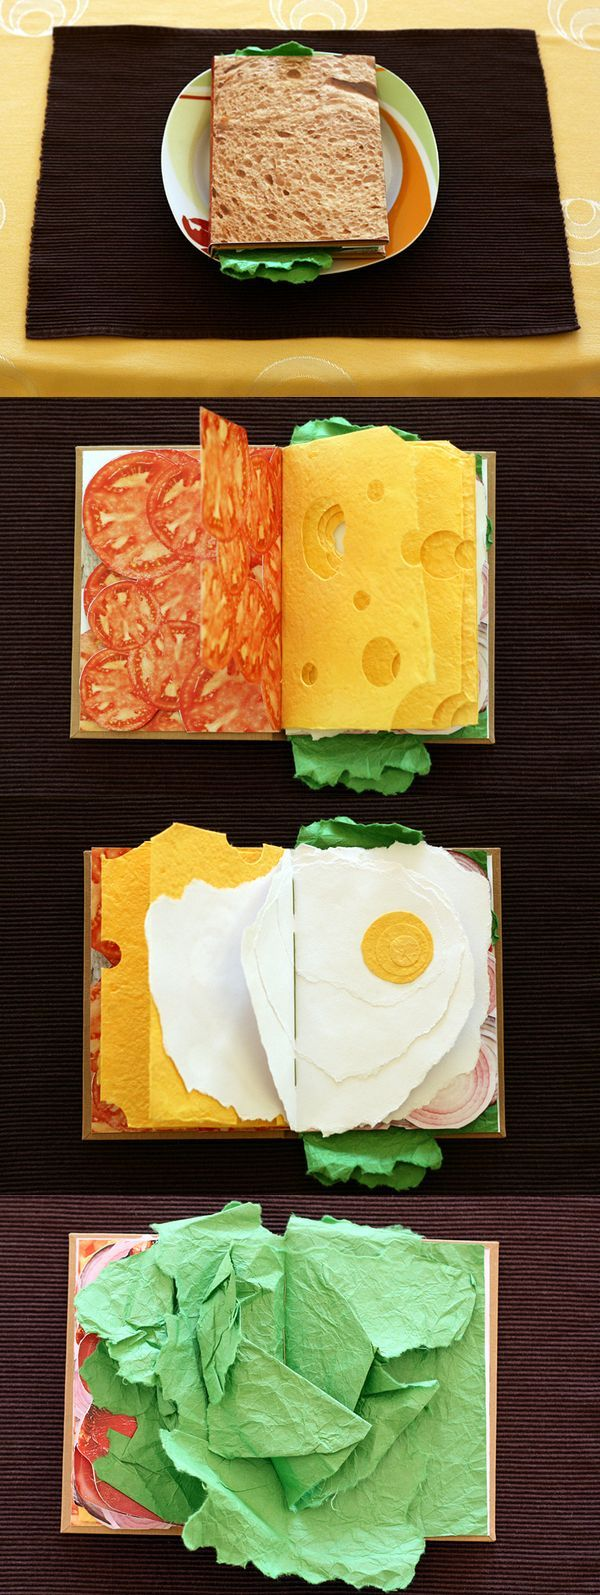 Sandwich Book by Pawel Piotrowski. #sandwich #packaging #creative #package #design #smart #concept